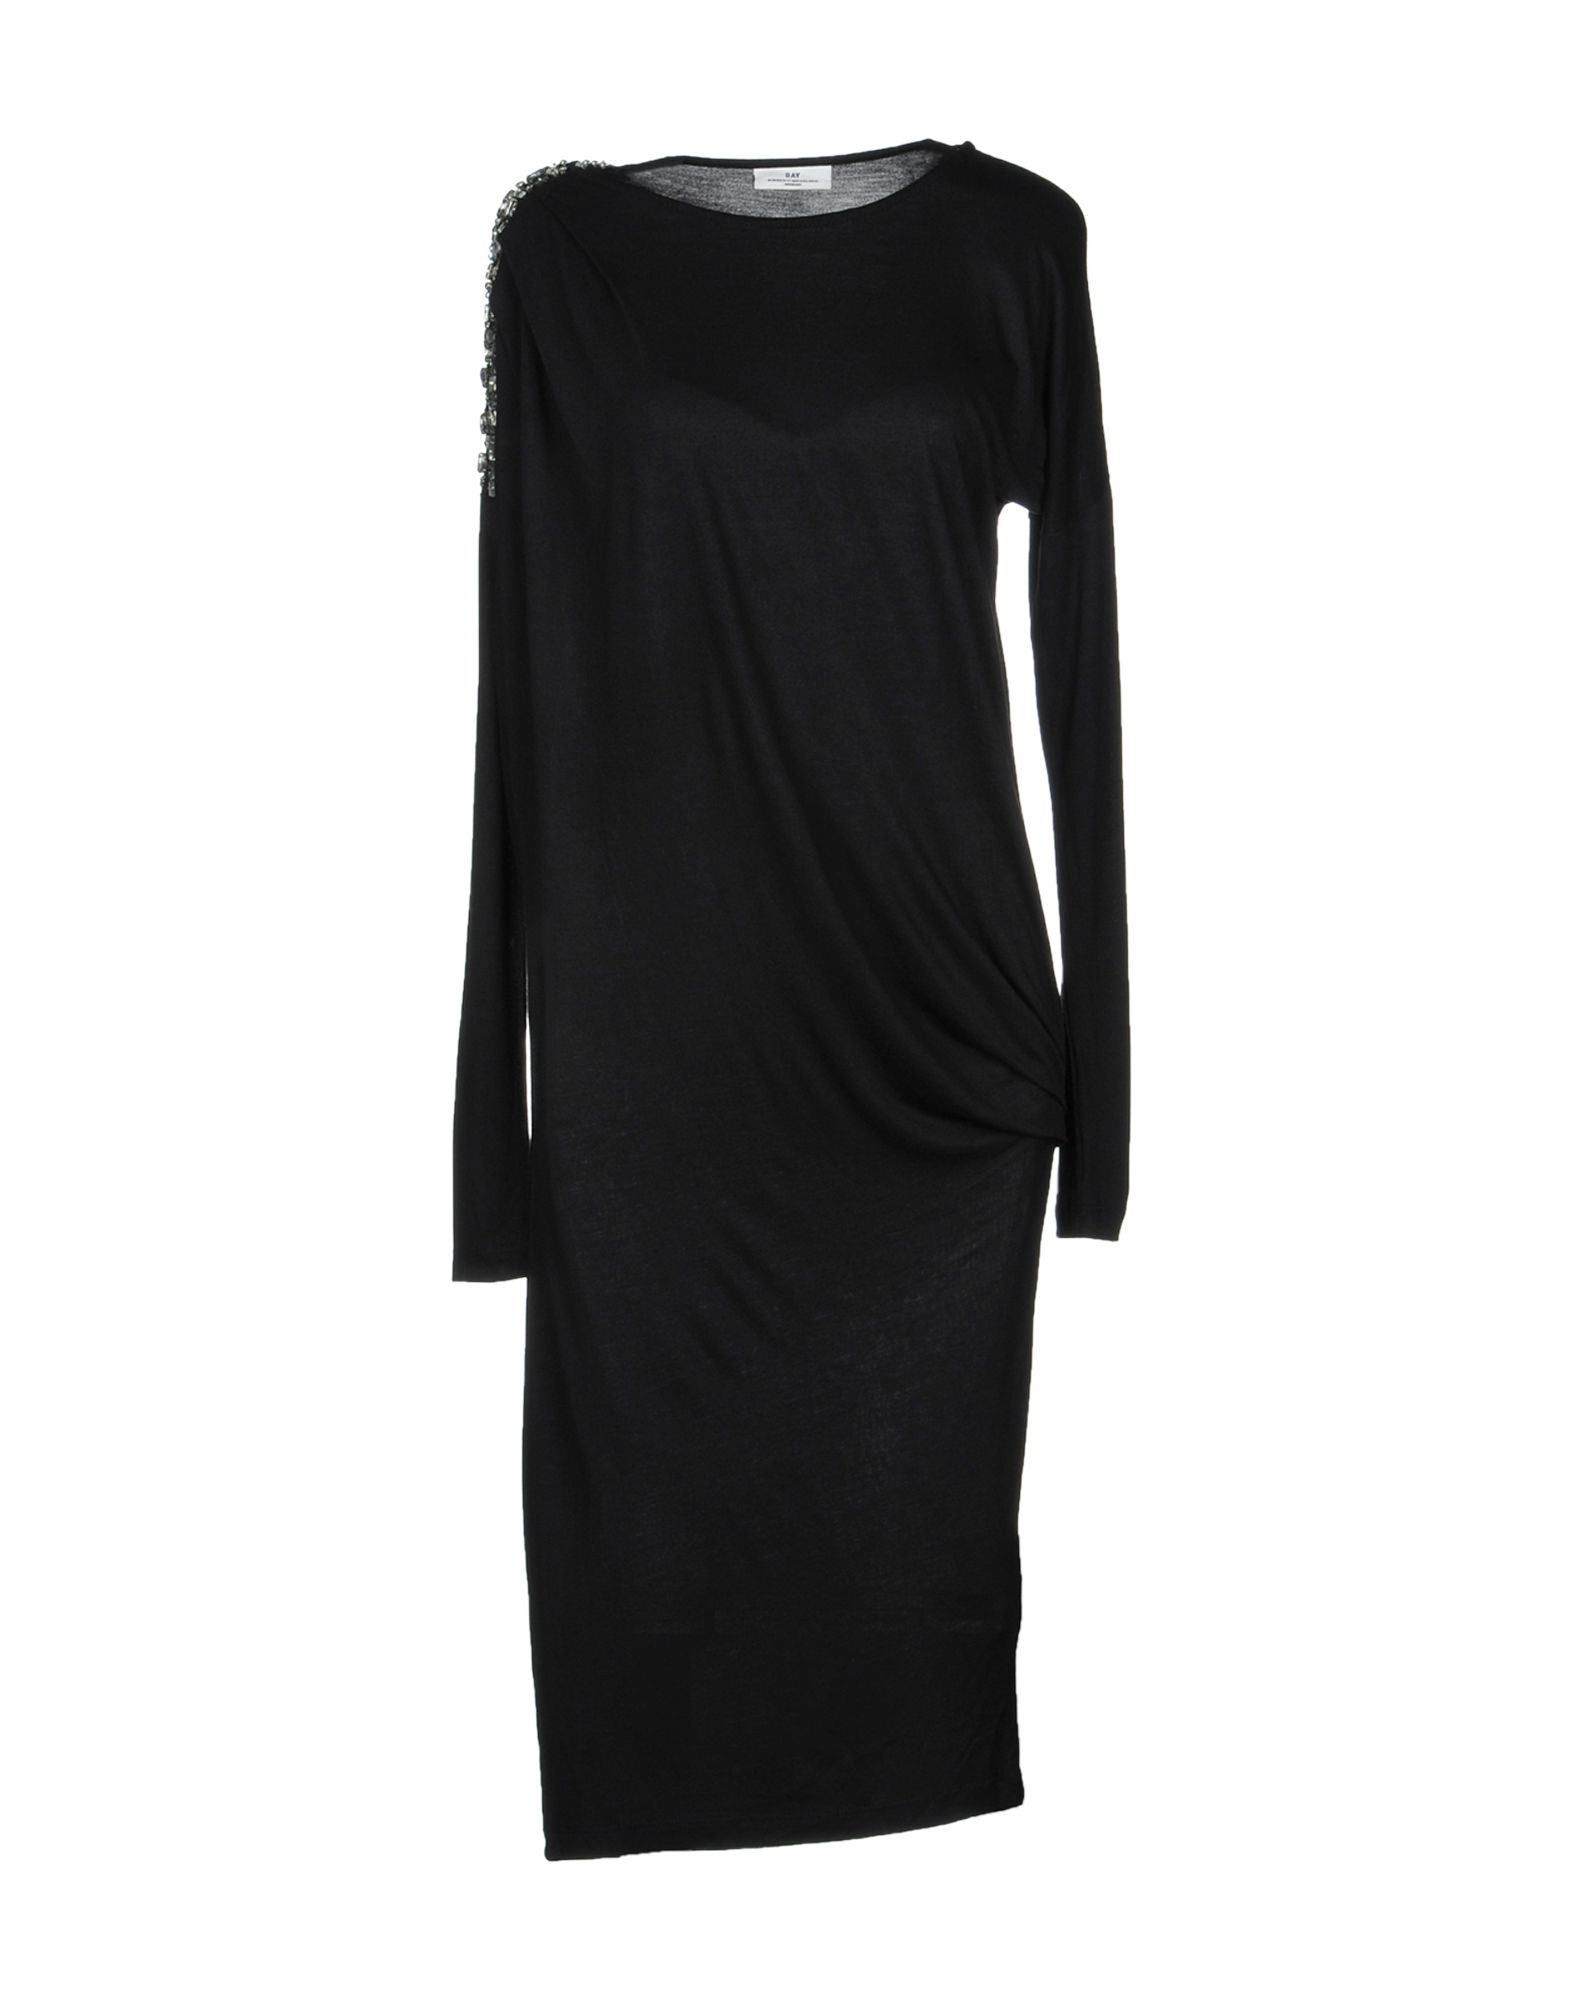 DAY BIRGER ET MIKKELSEN Knee-Length Dress in Black